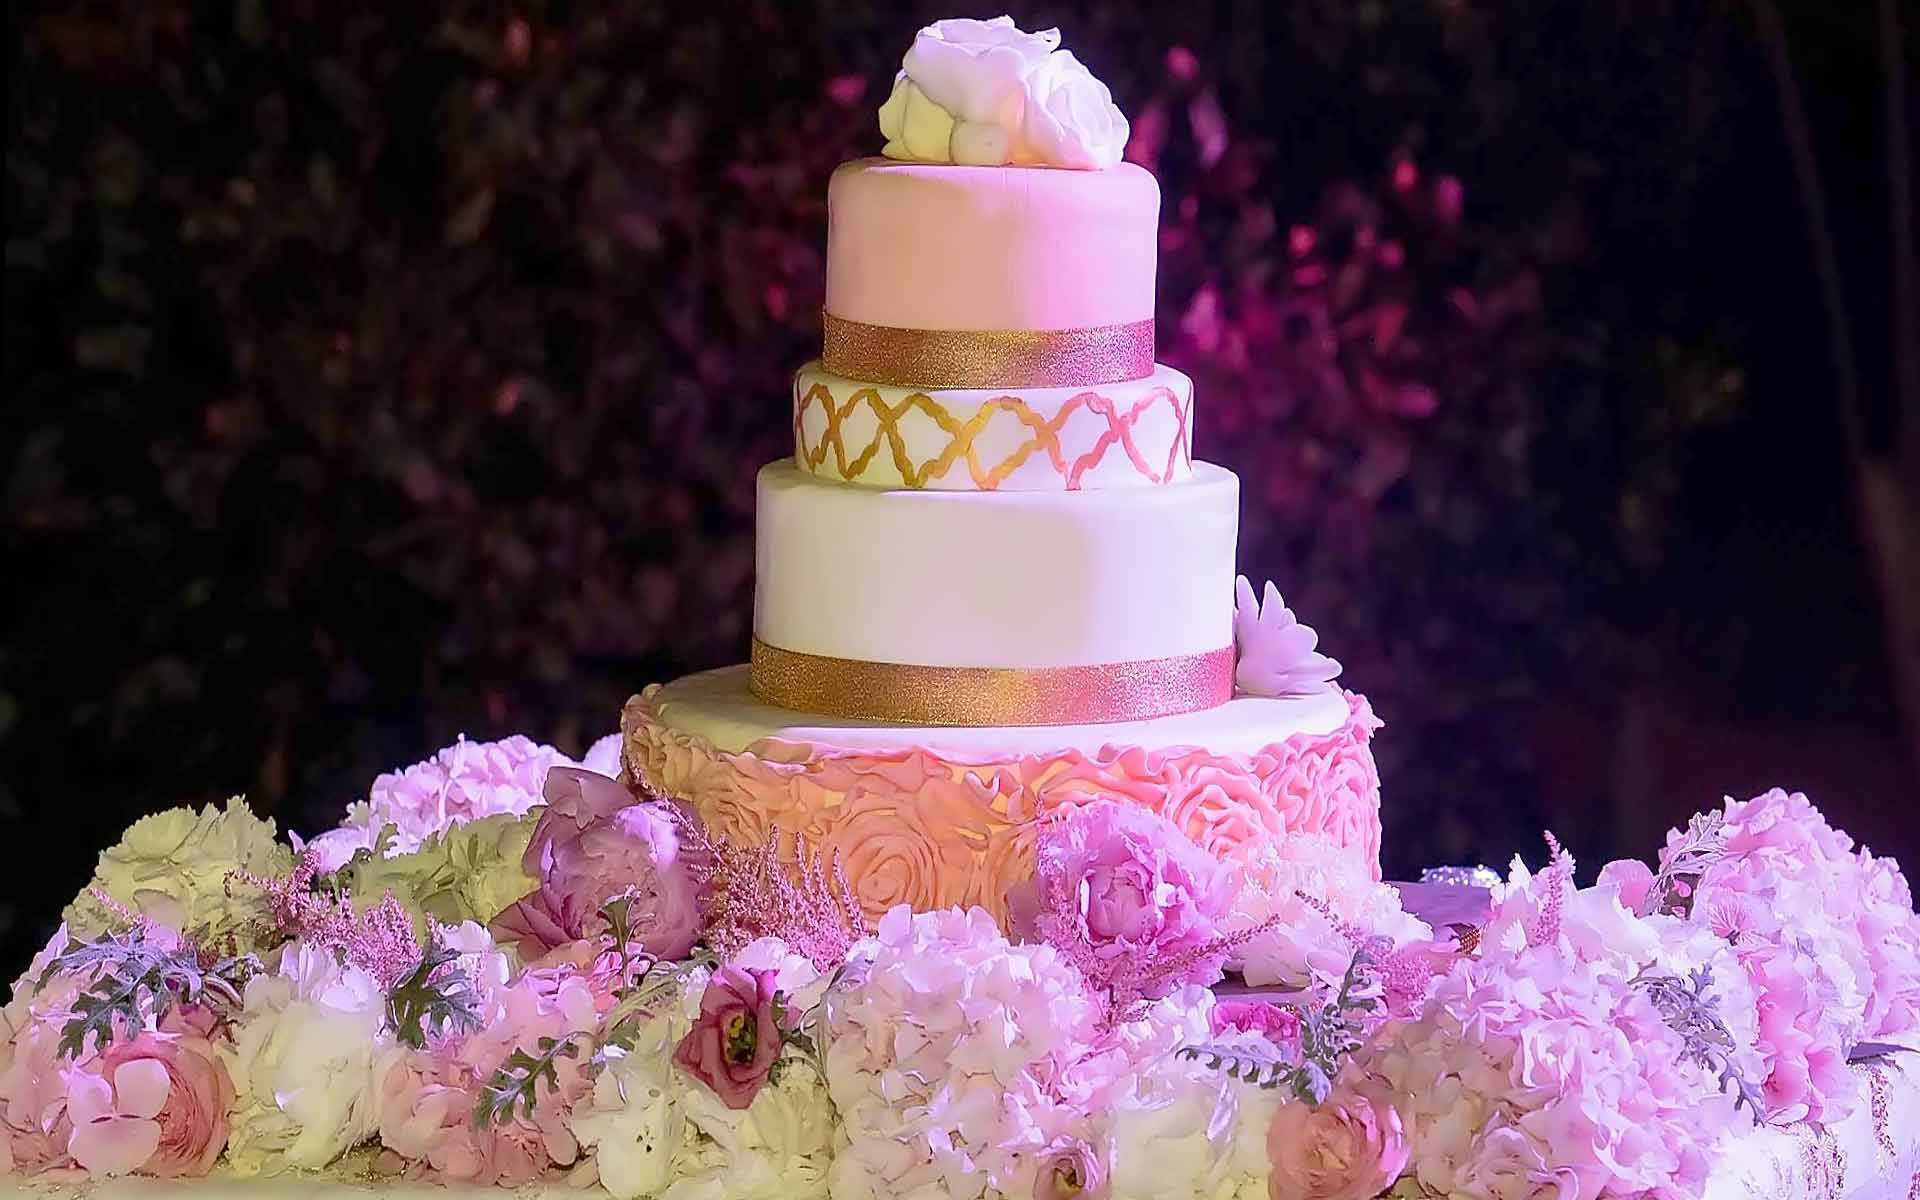 Every-Layer-Is-Like-A-Layer-Of-Love-Gold-Hand-Painted-Accents-Blush-Flowers